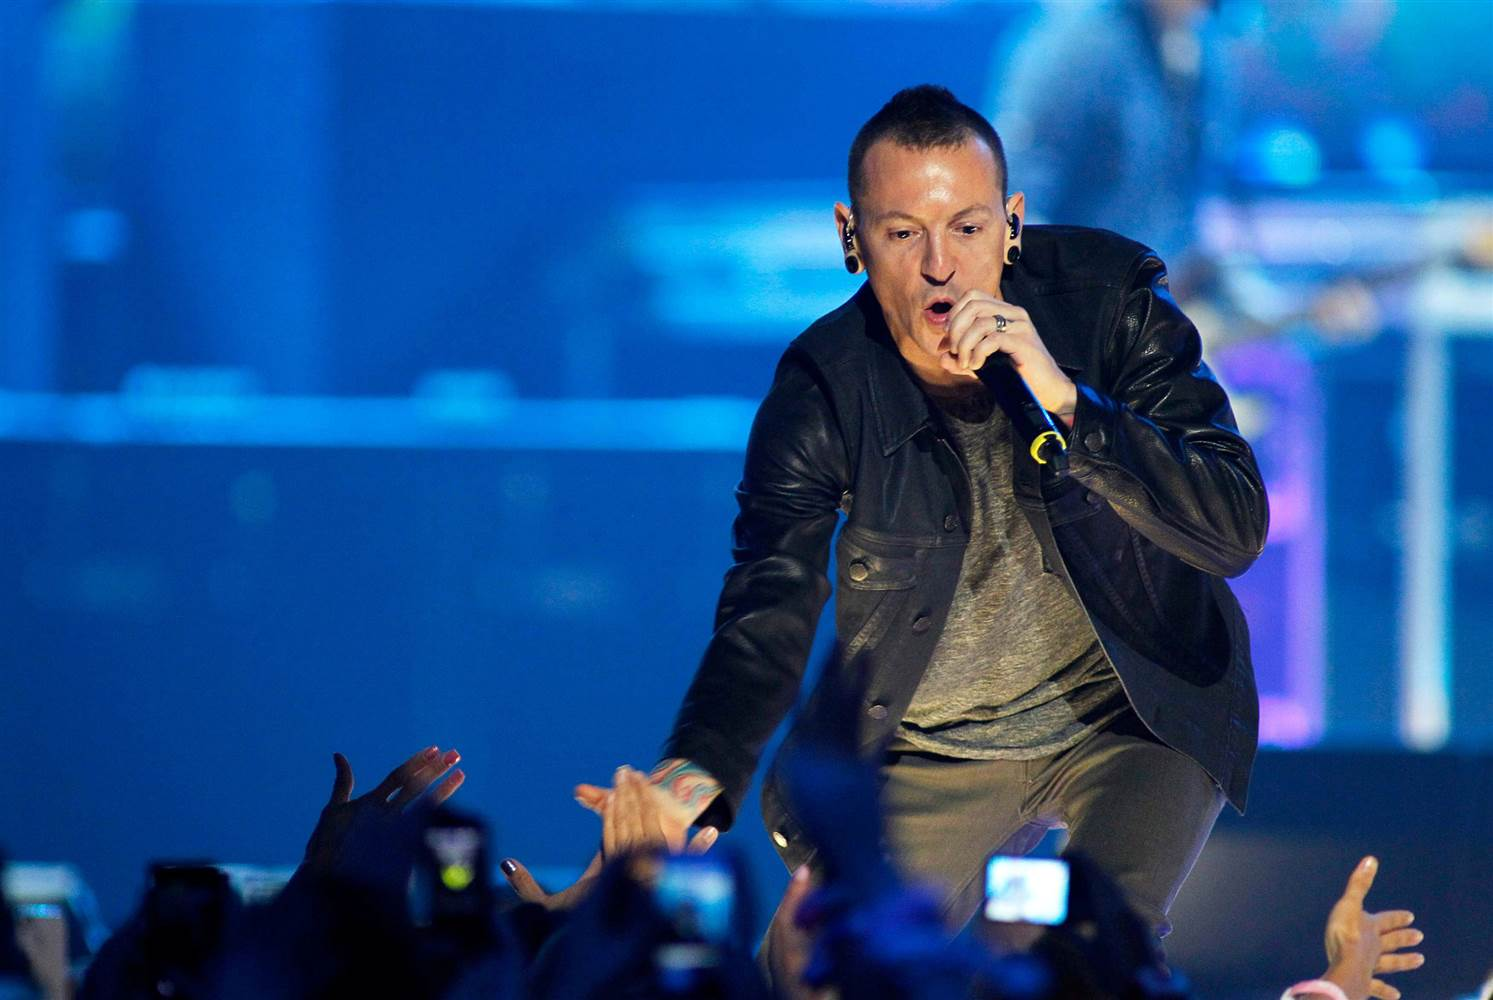 Chester Bennington Ipswich Town Fan Linkin Park Suicidio